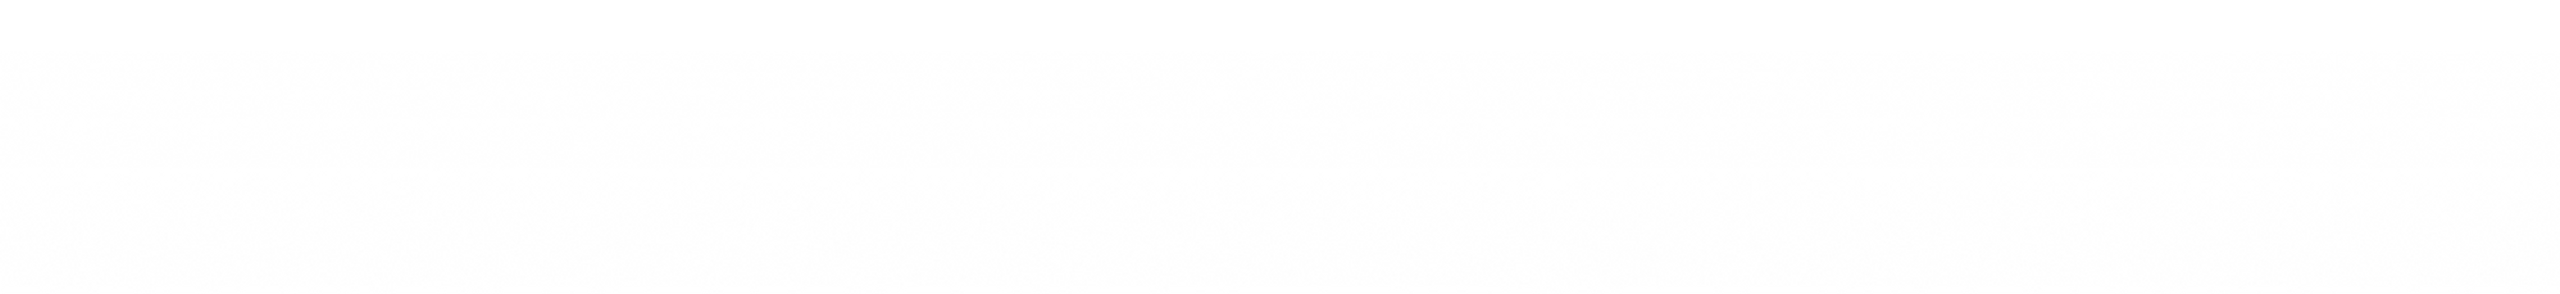 White%2520Gradient_edited_edited.png